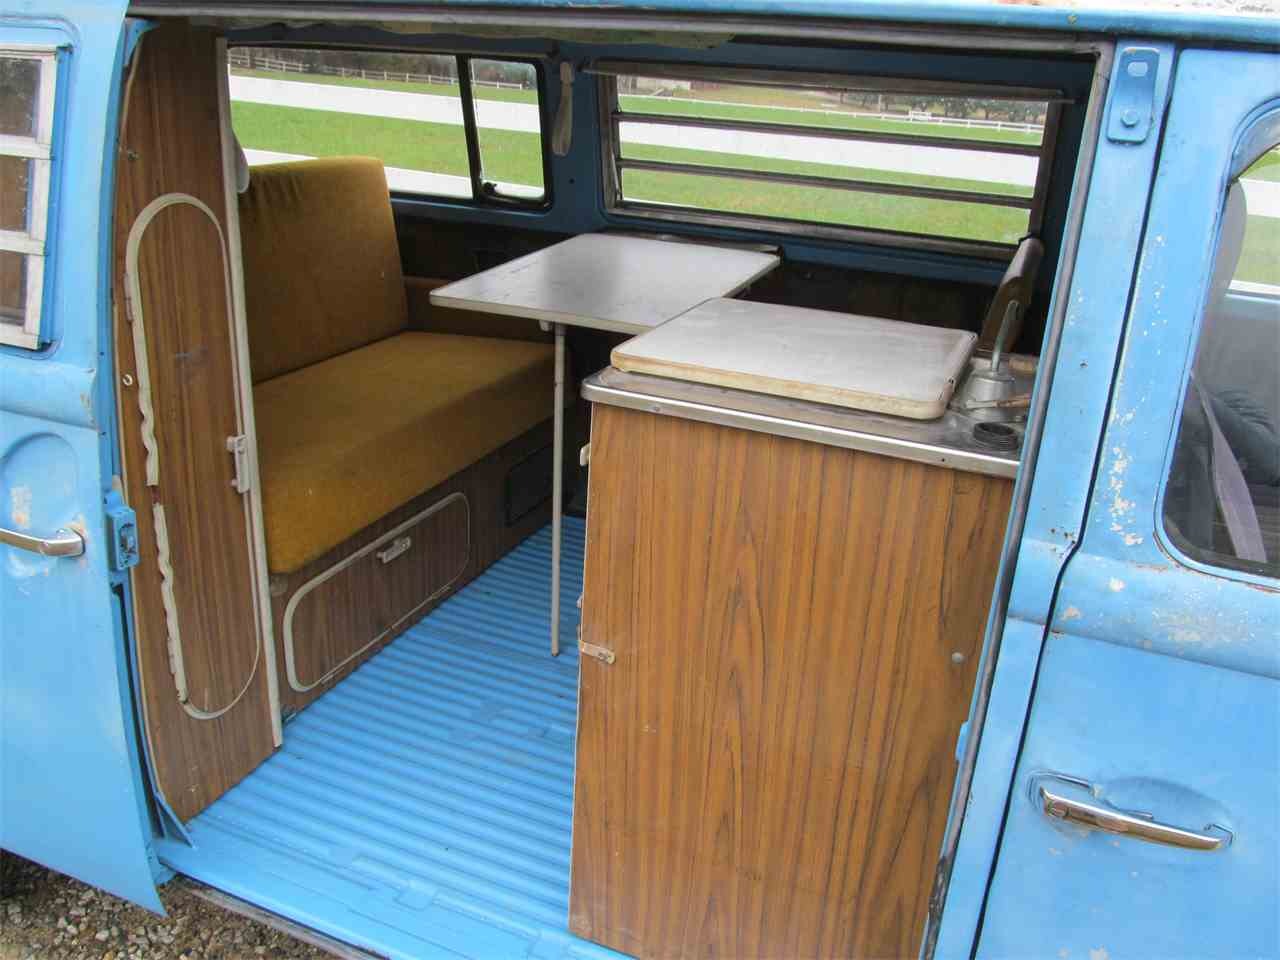 Large Picture of Classic '72 Bus located in Fayetteville Georgia - $8,900.00 Offered by Peachtree Classic Cars - MAIP